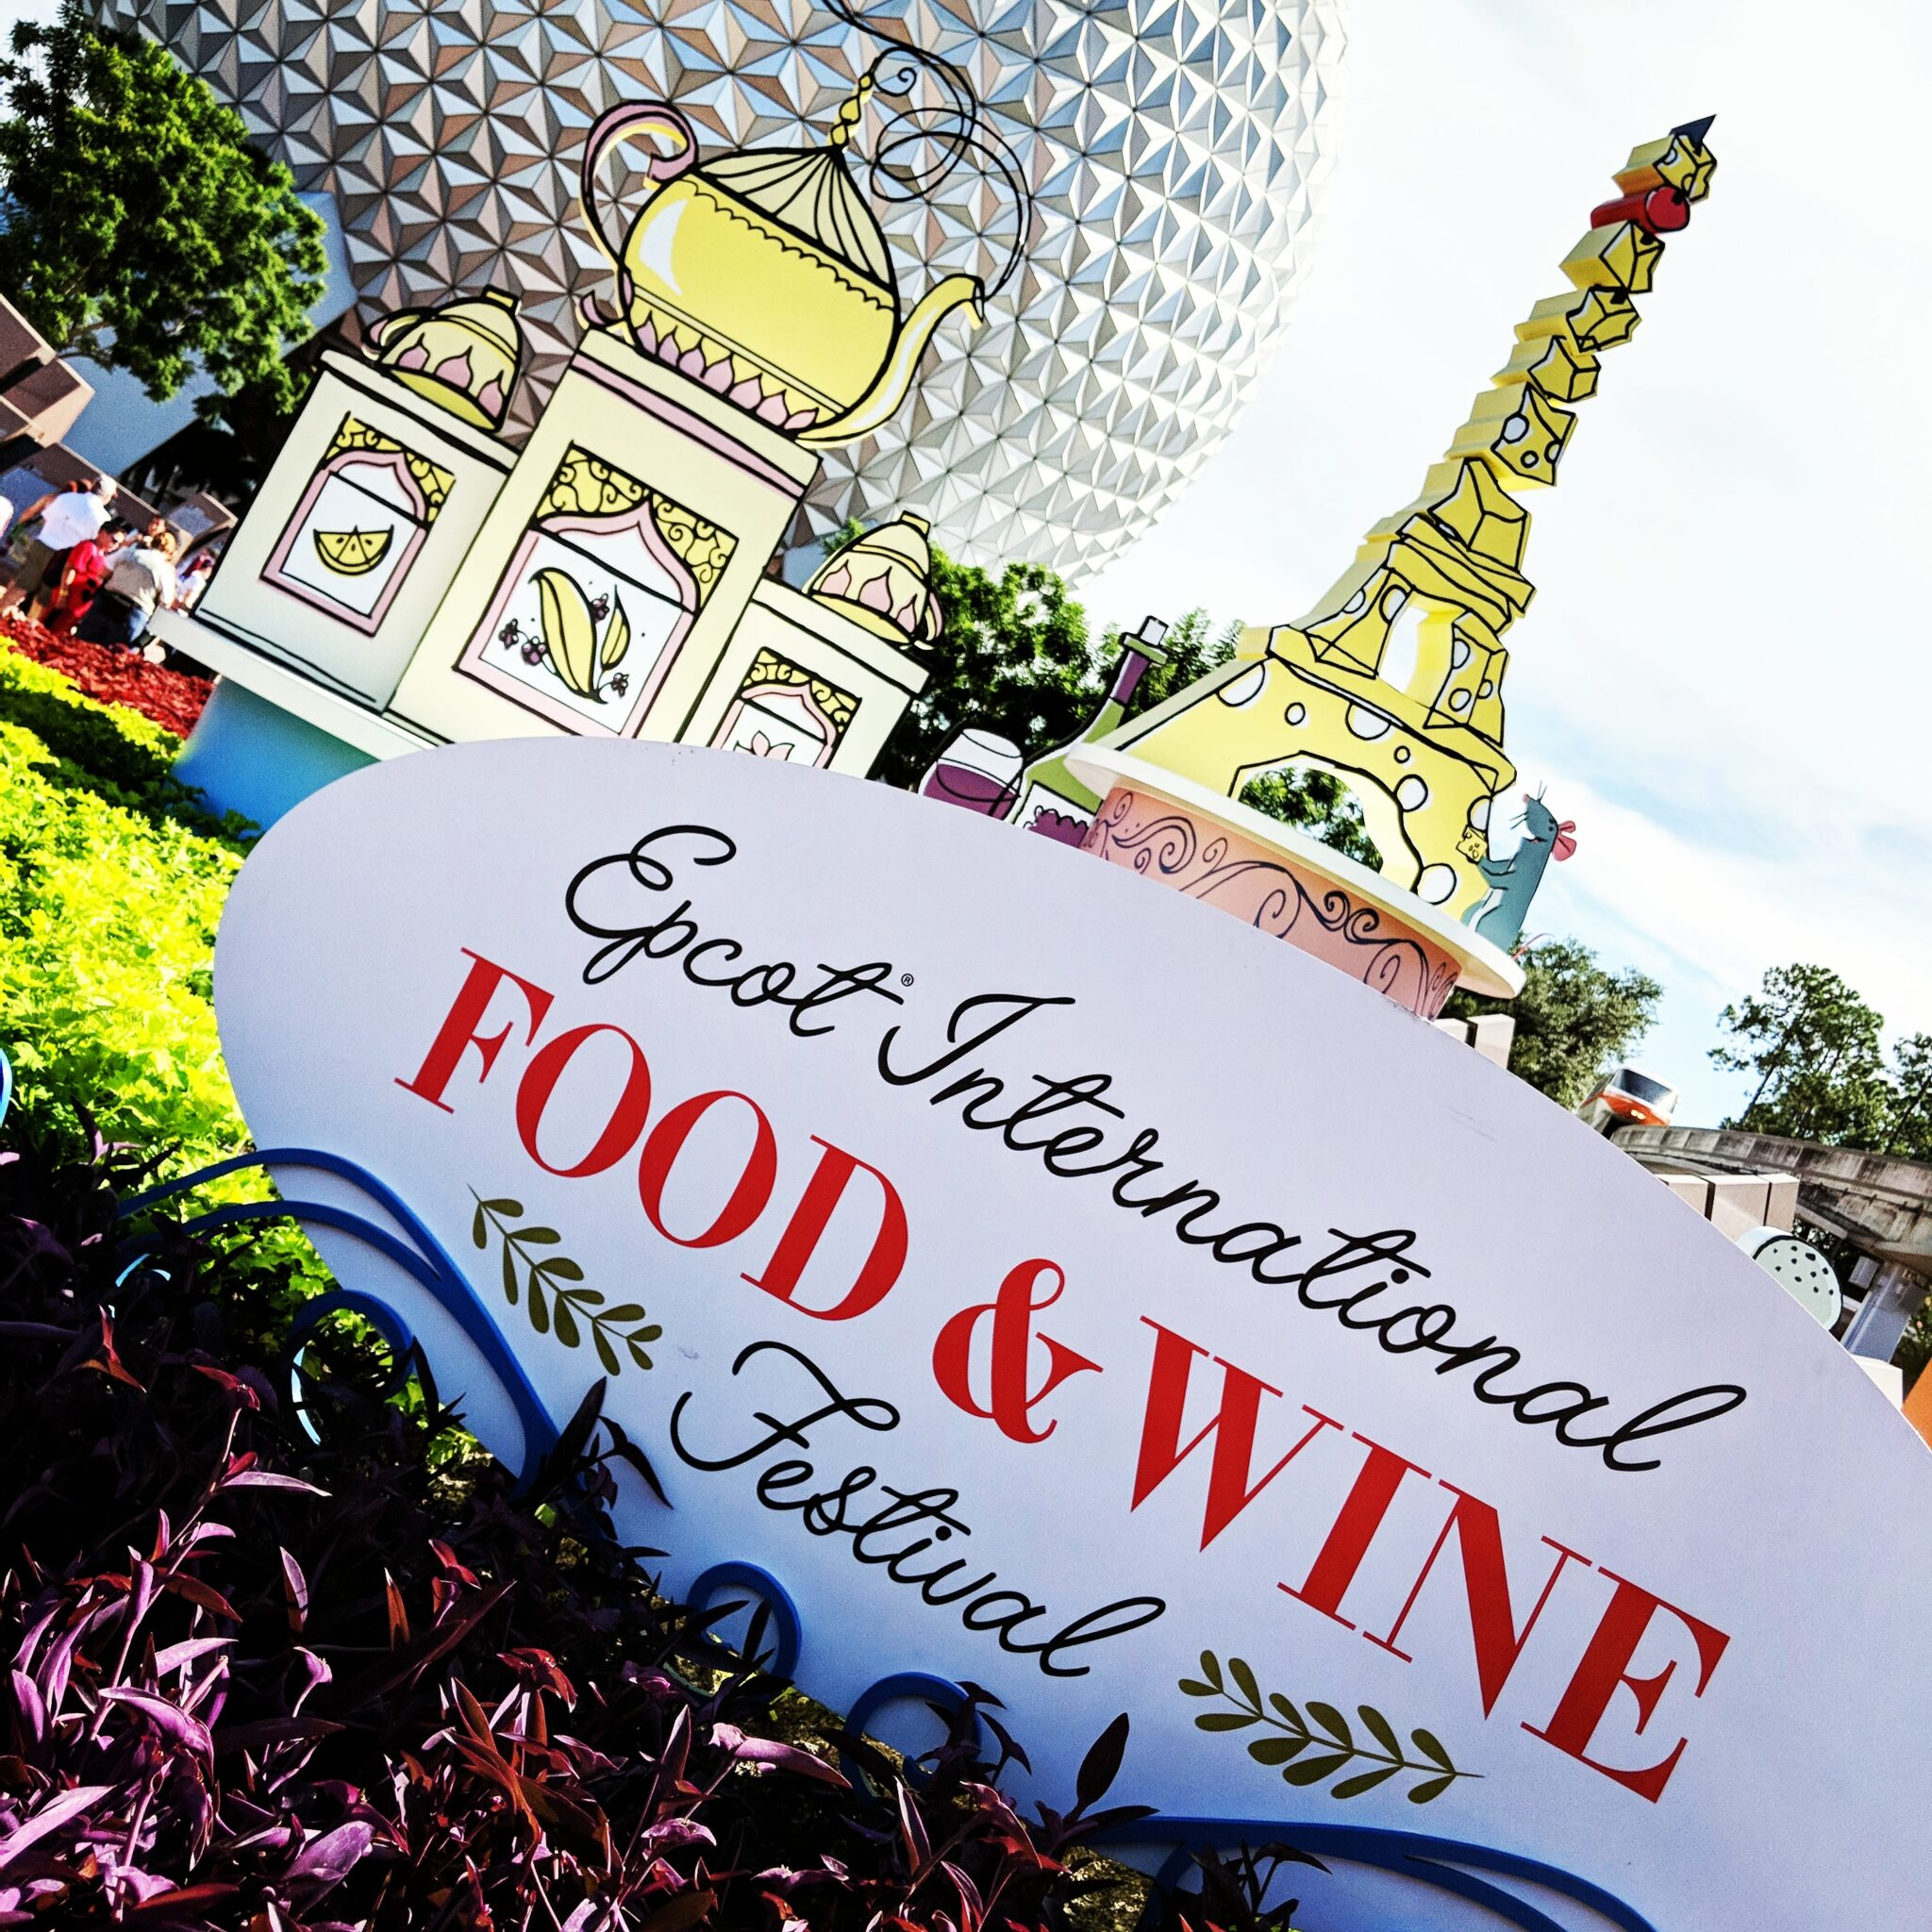 Discover how to do Epcot Food & Wine Festival on a budget.